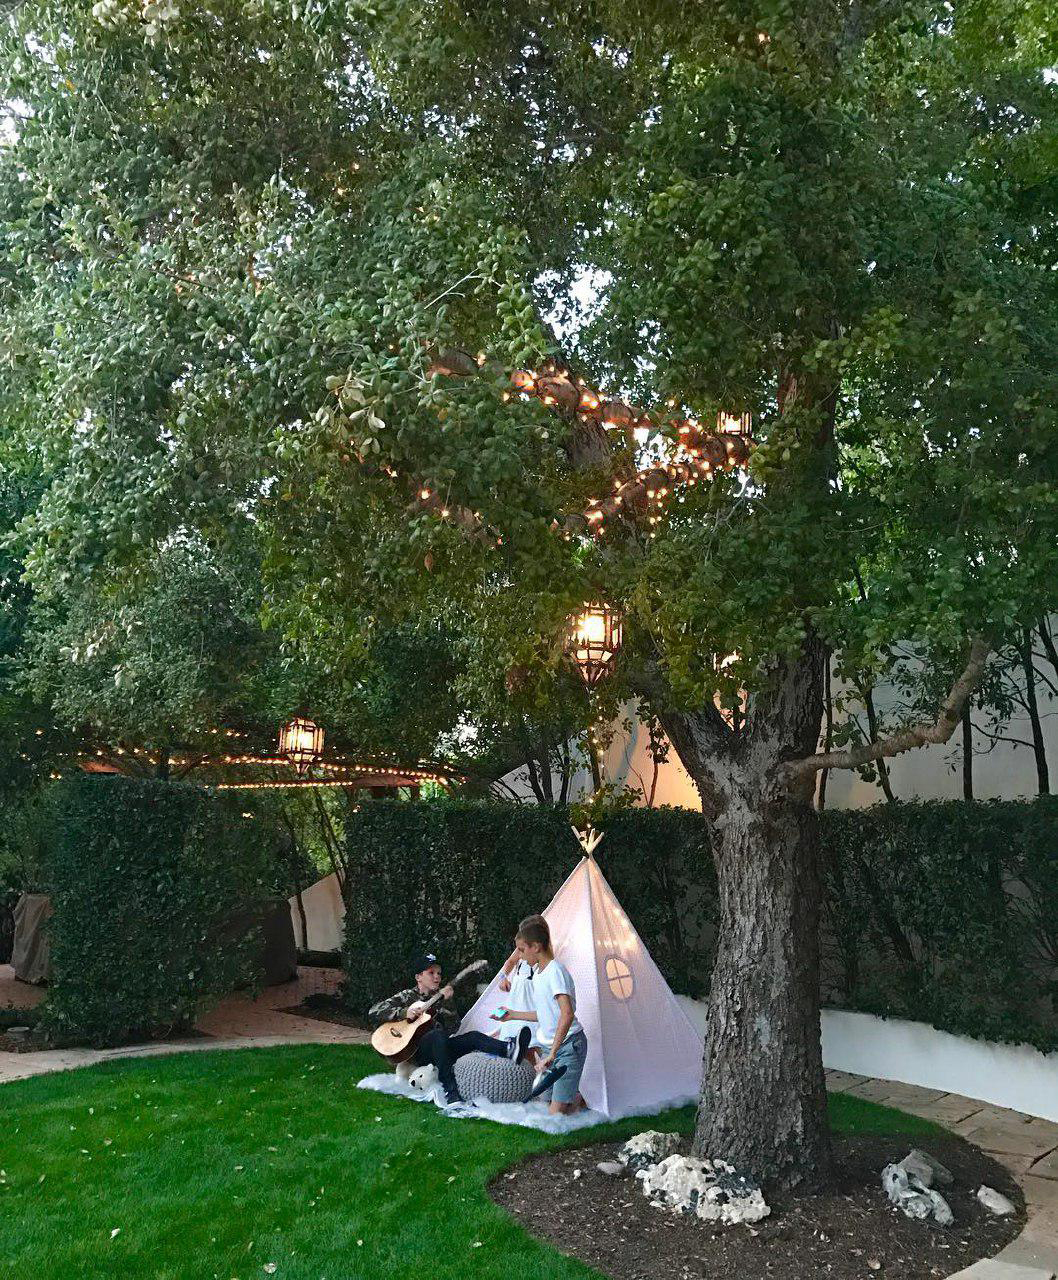 The Beckham boys play in a cute tipi in the garden. Image: @victoriabeckham / Instagram